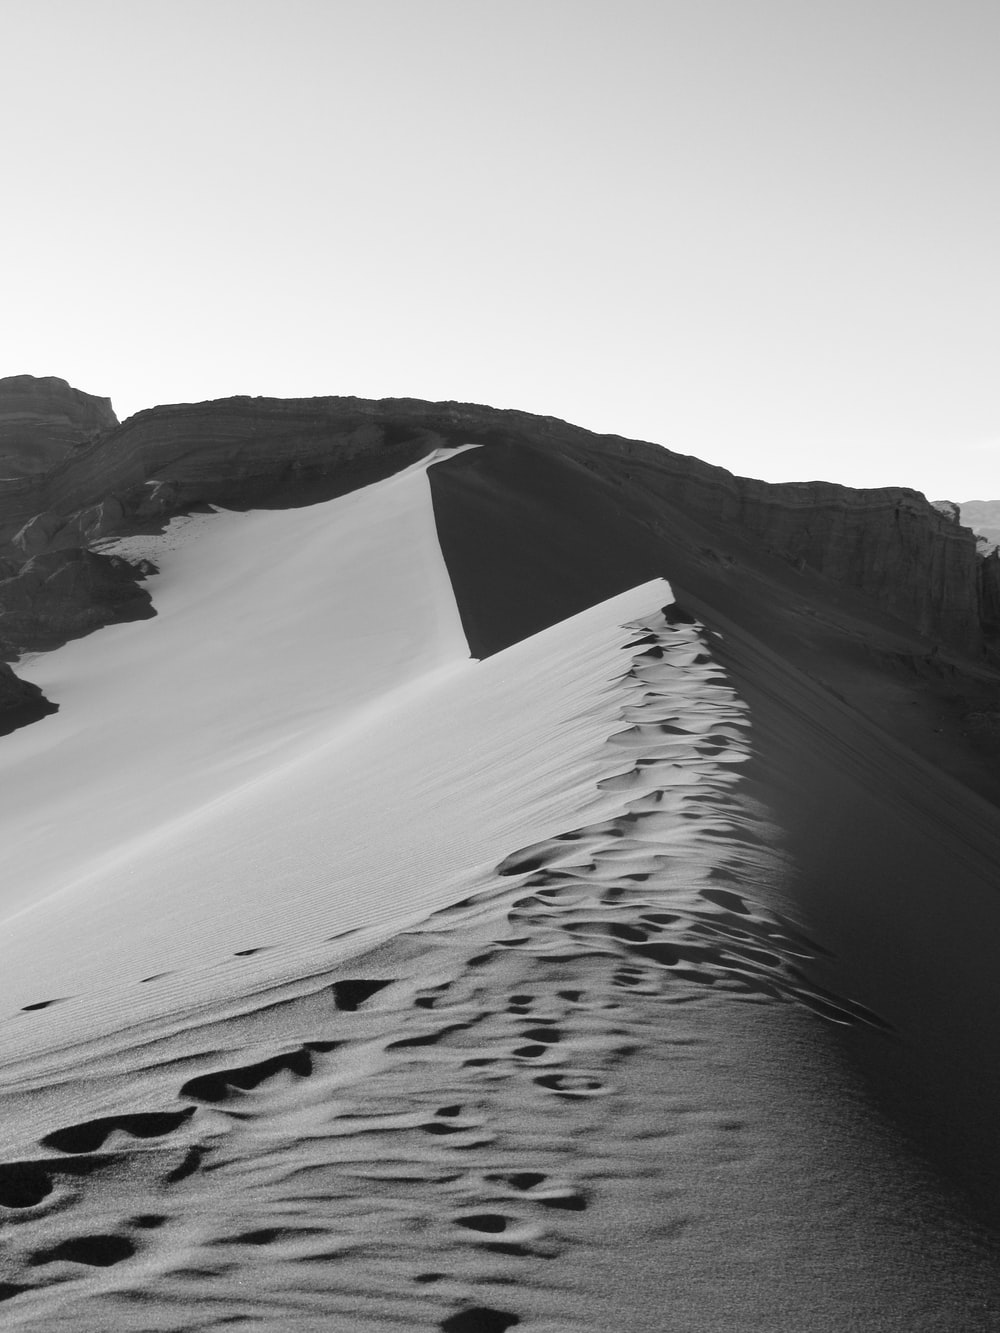 grayscale photography of footprints on desert mountain